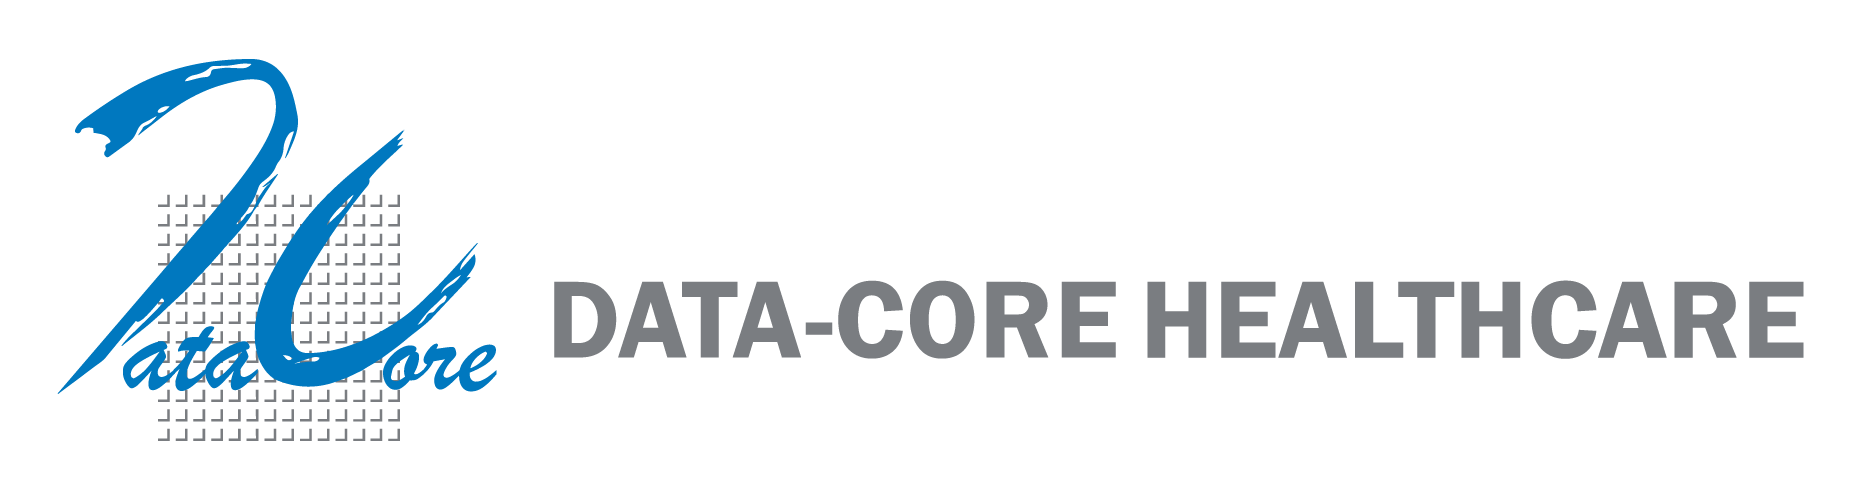 Data-Core Healthcare